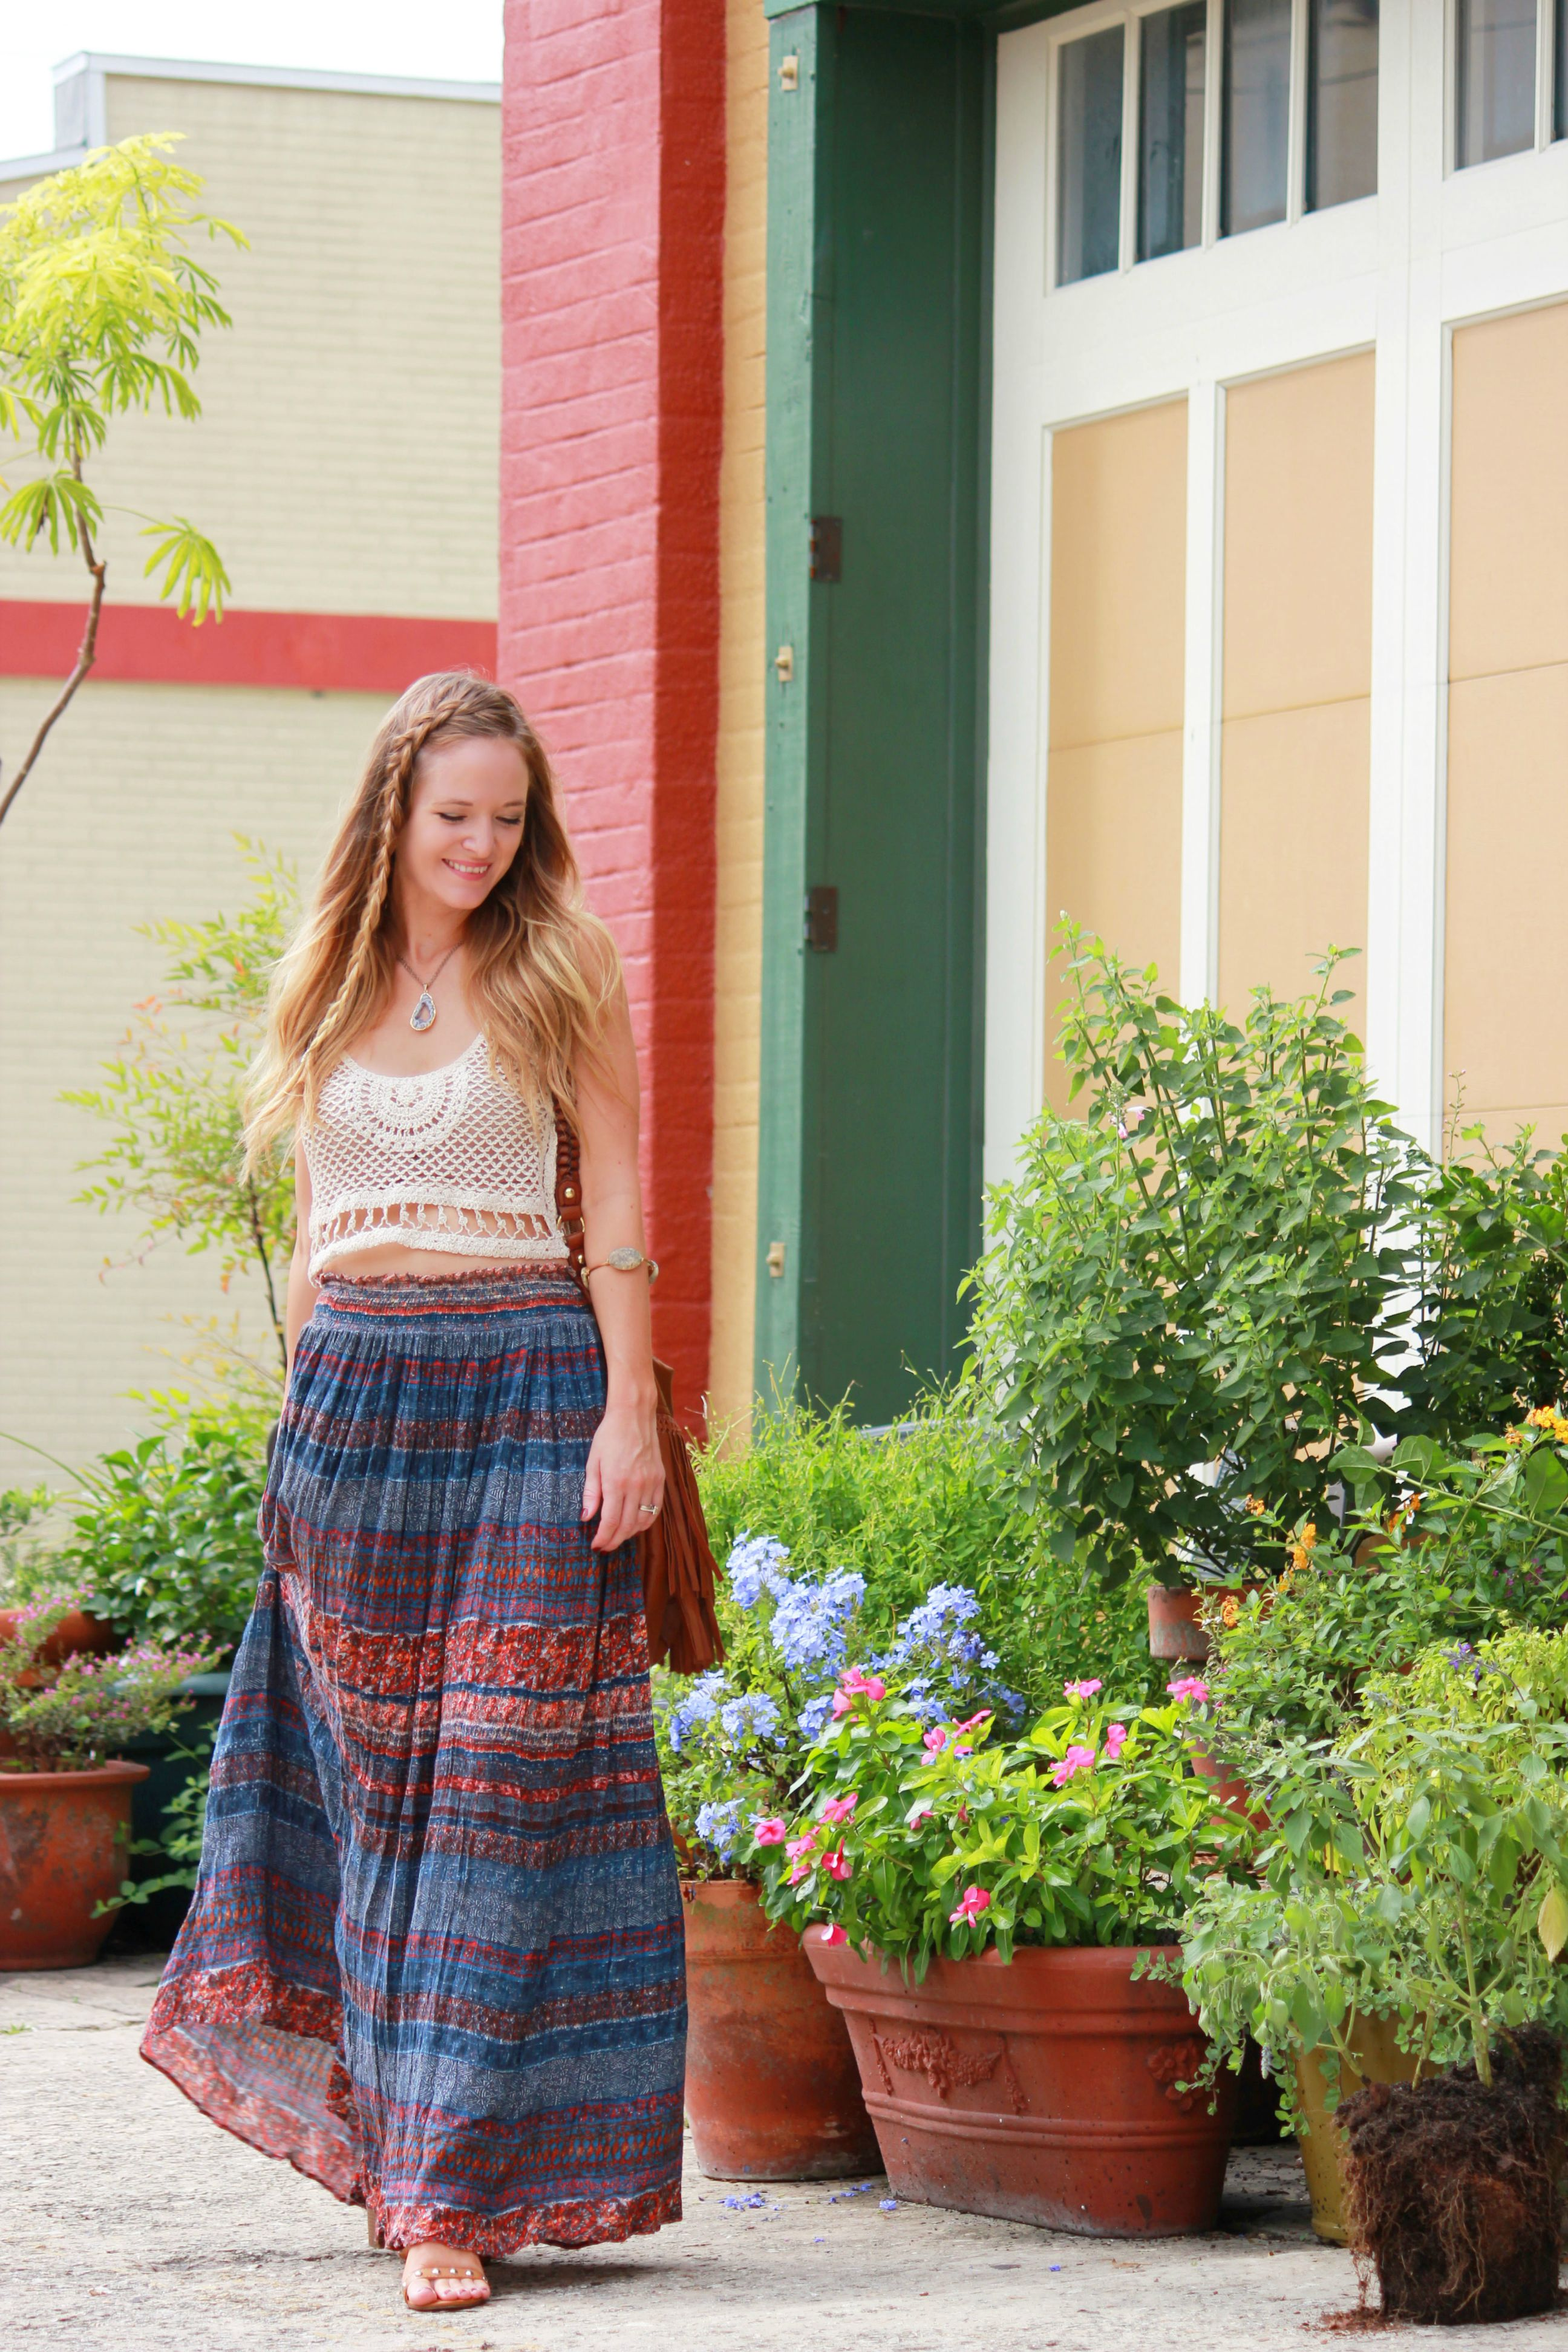 orlando/ florida fashion blog styling windsor crop top, windsor maxi skirt, h&m fringe bag for bohemian casual outfit